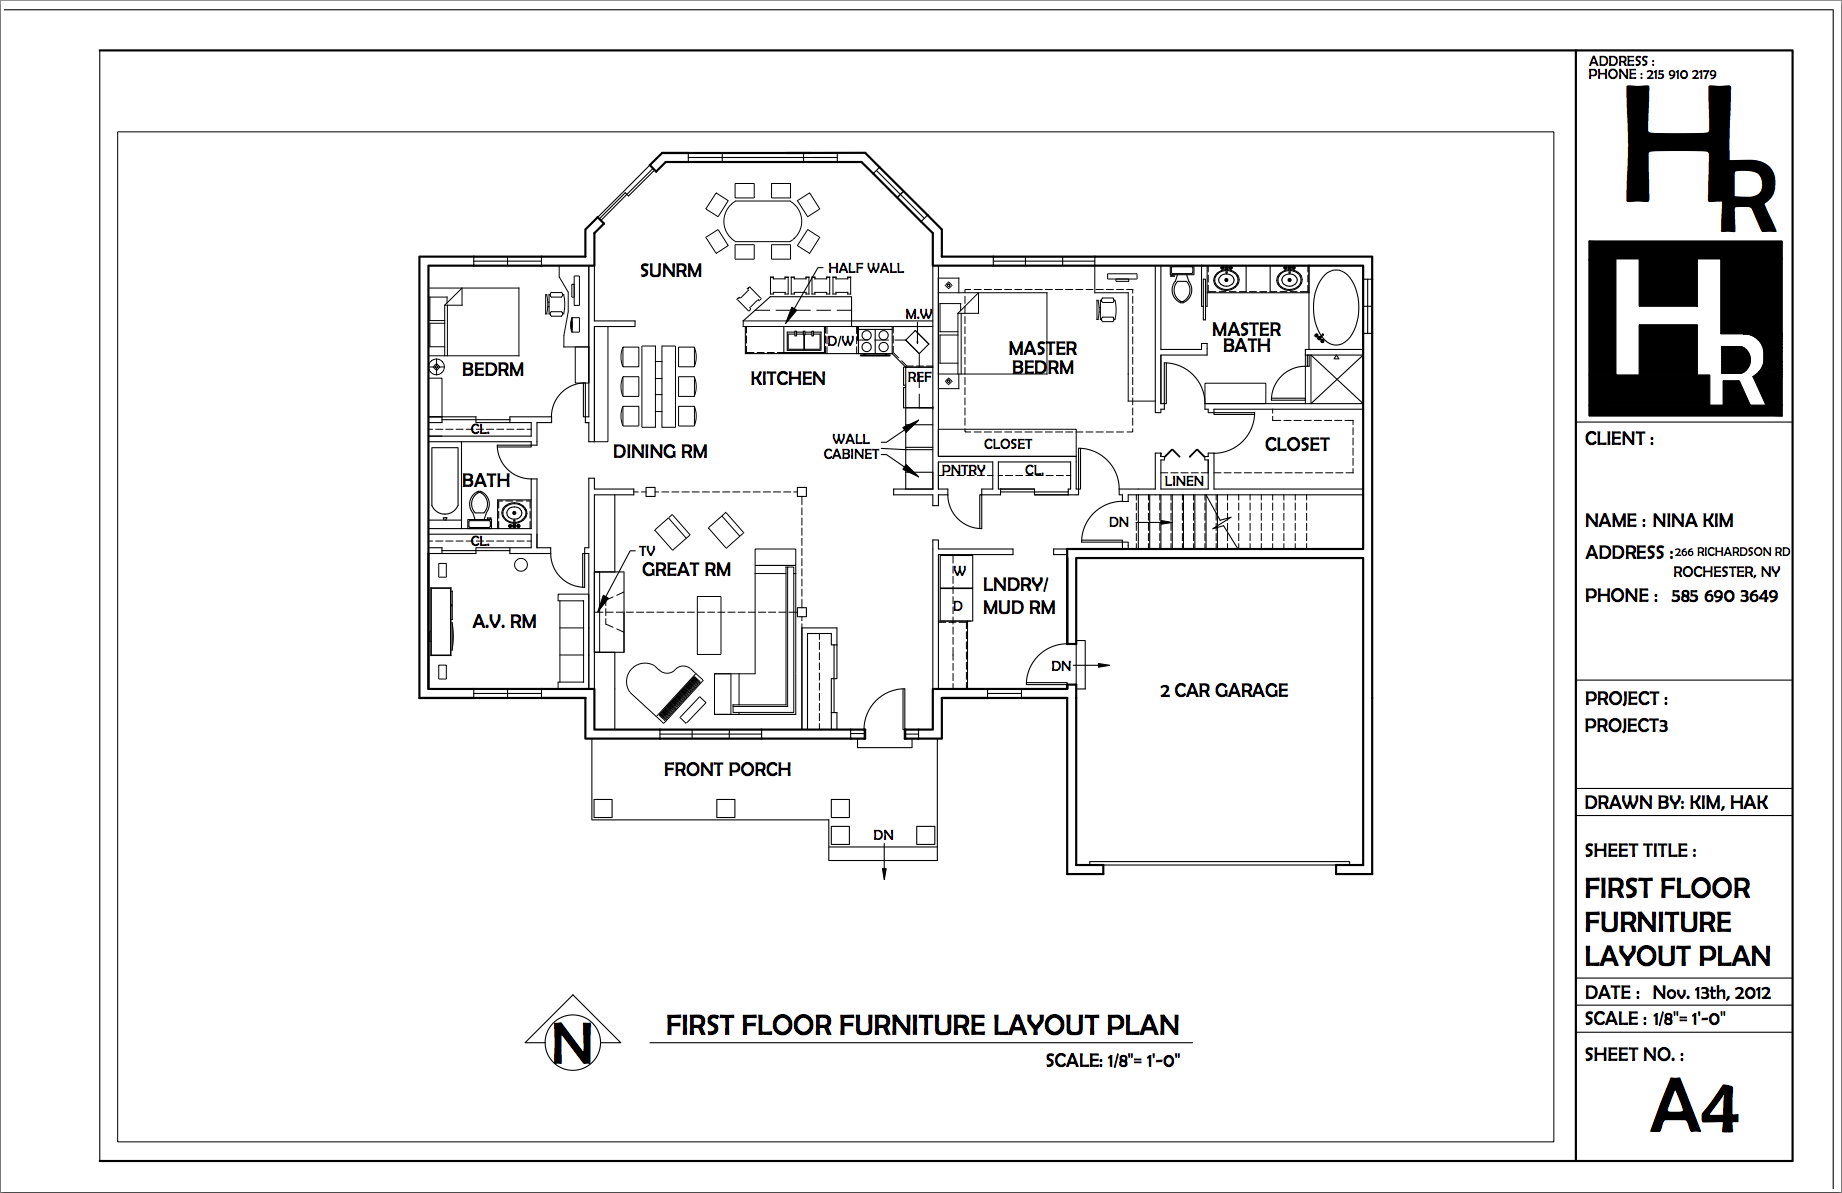 Furniture Layout Plan In Autocad